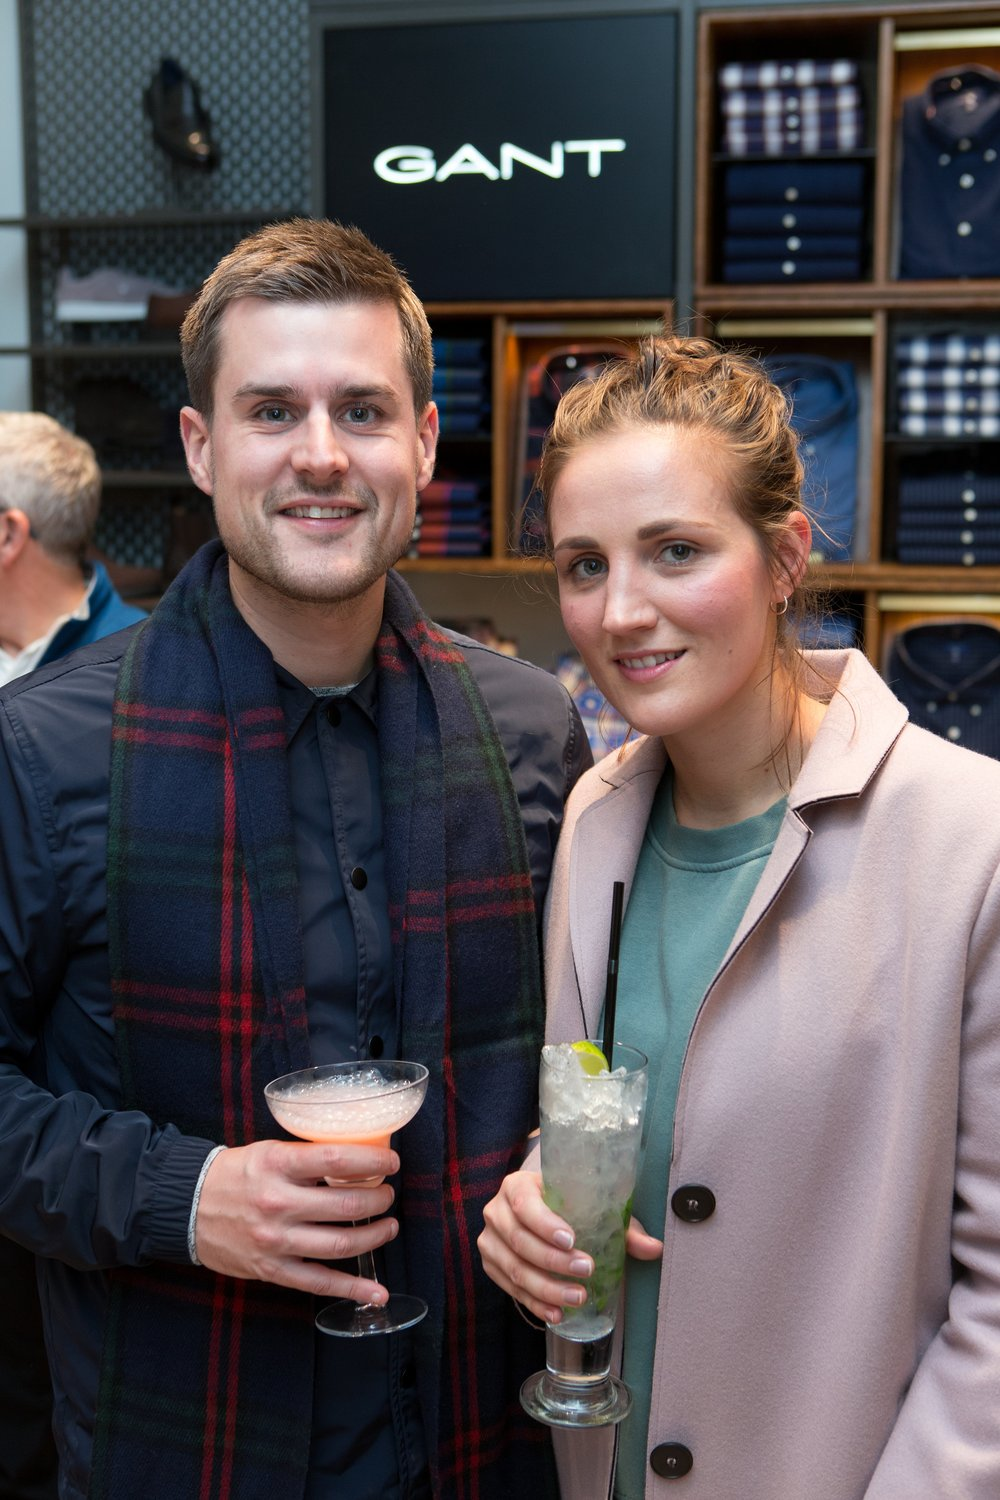 leeds_commercial_events_photographer_james_arnold_jarnold_GANT_Victoria_Gate_0047.jpg